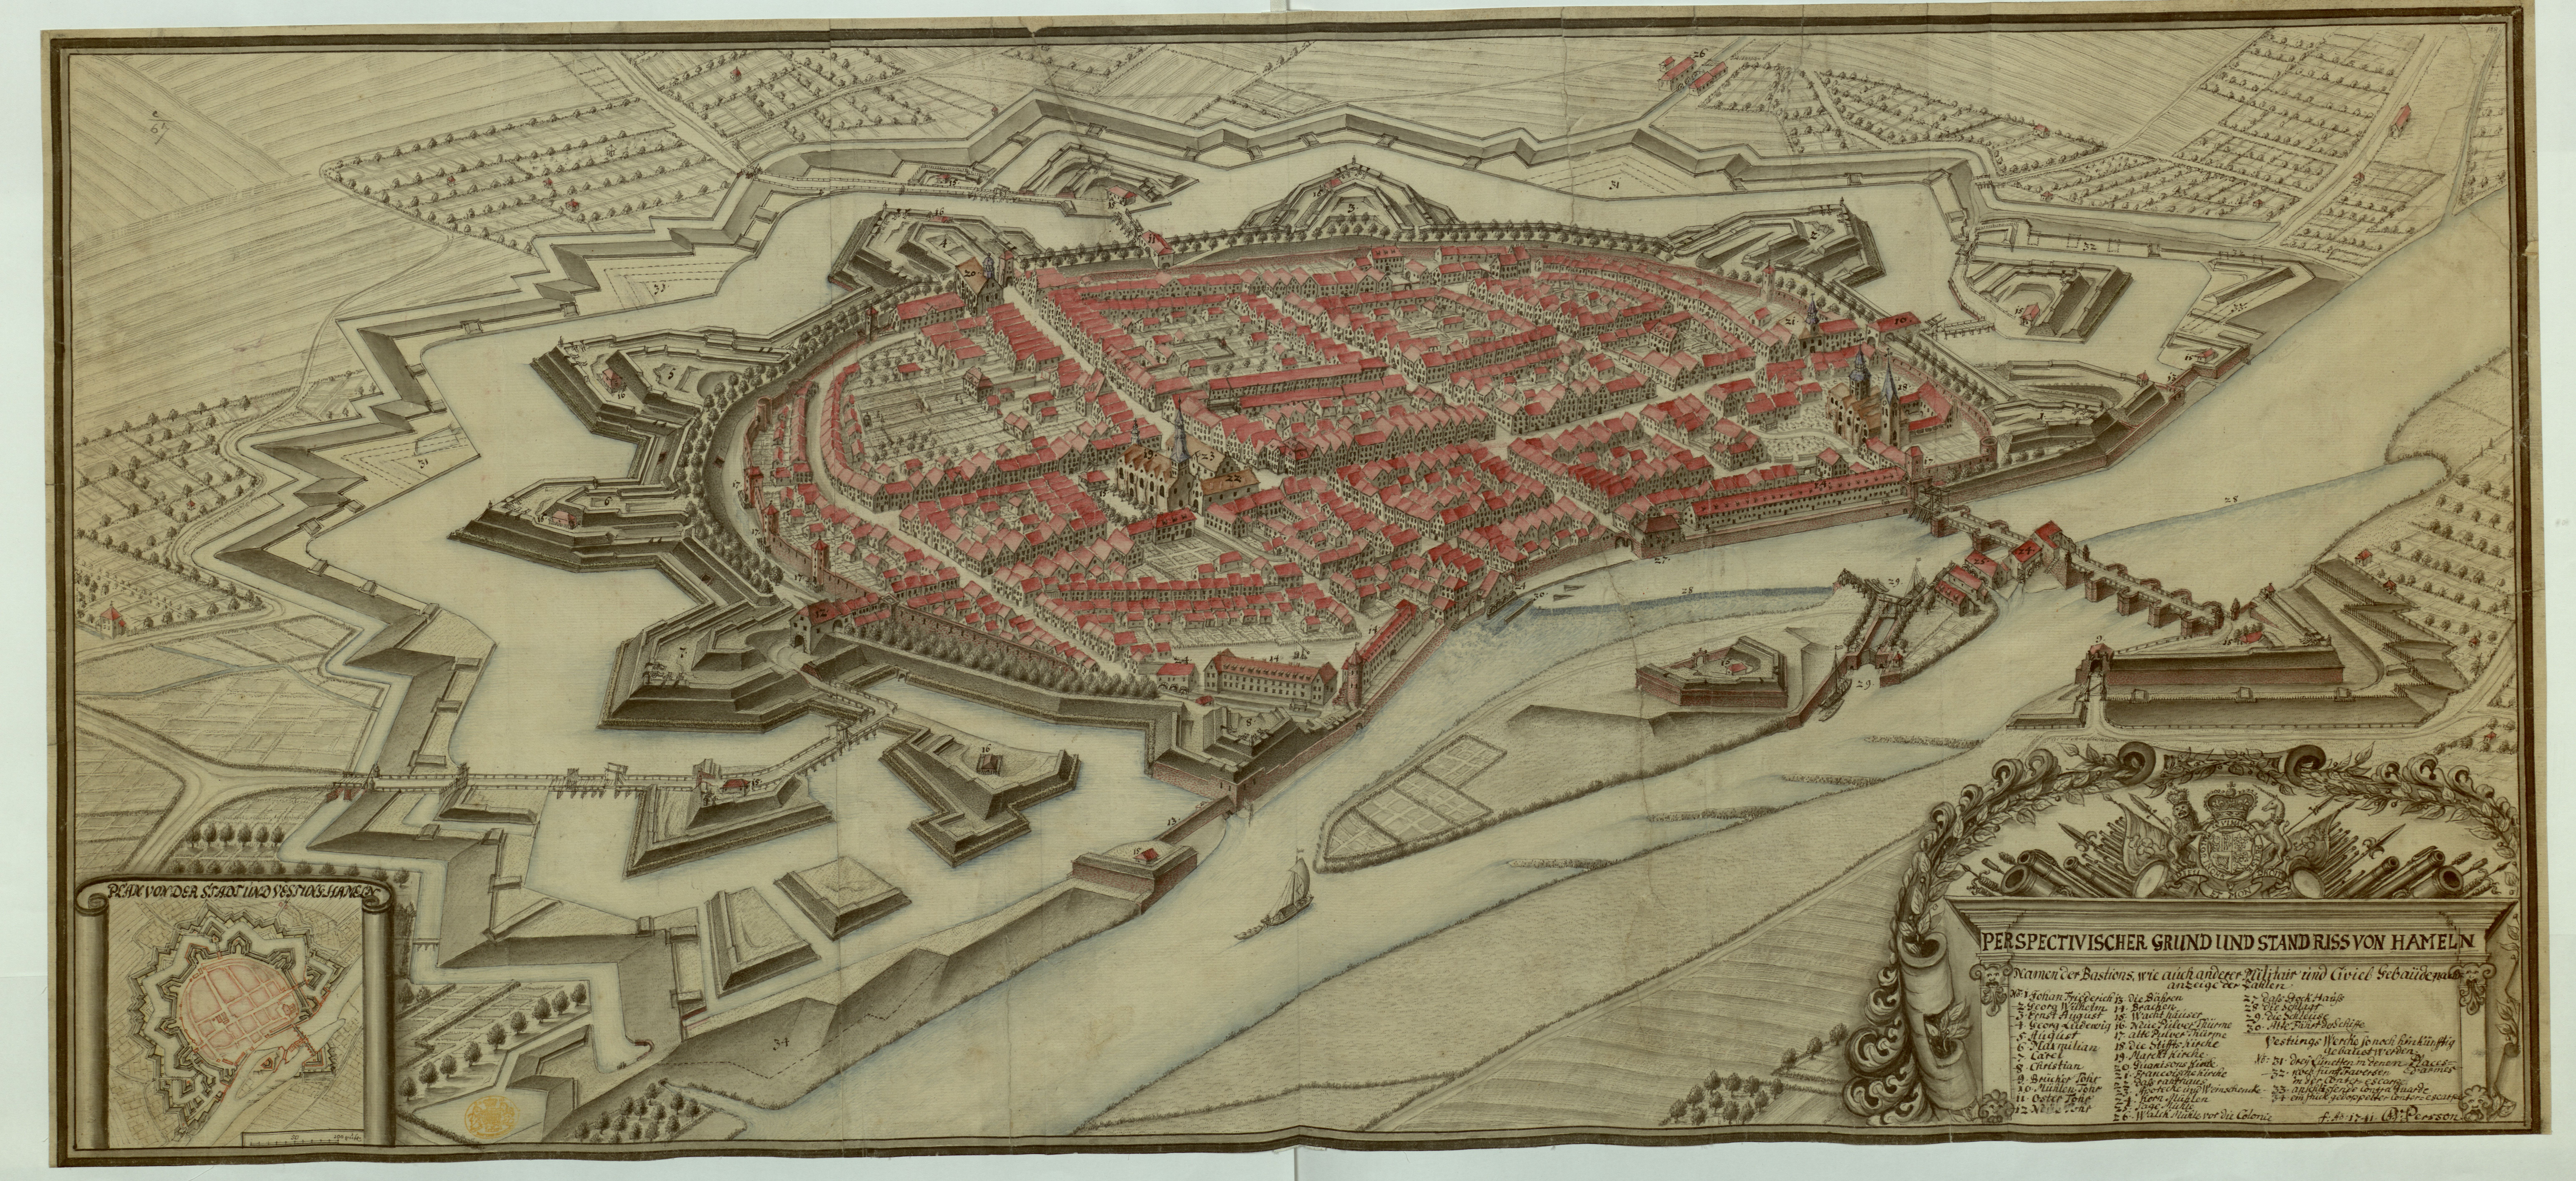 Bird's Eye View of Hameln Fort, Germany